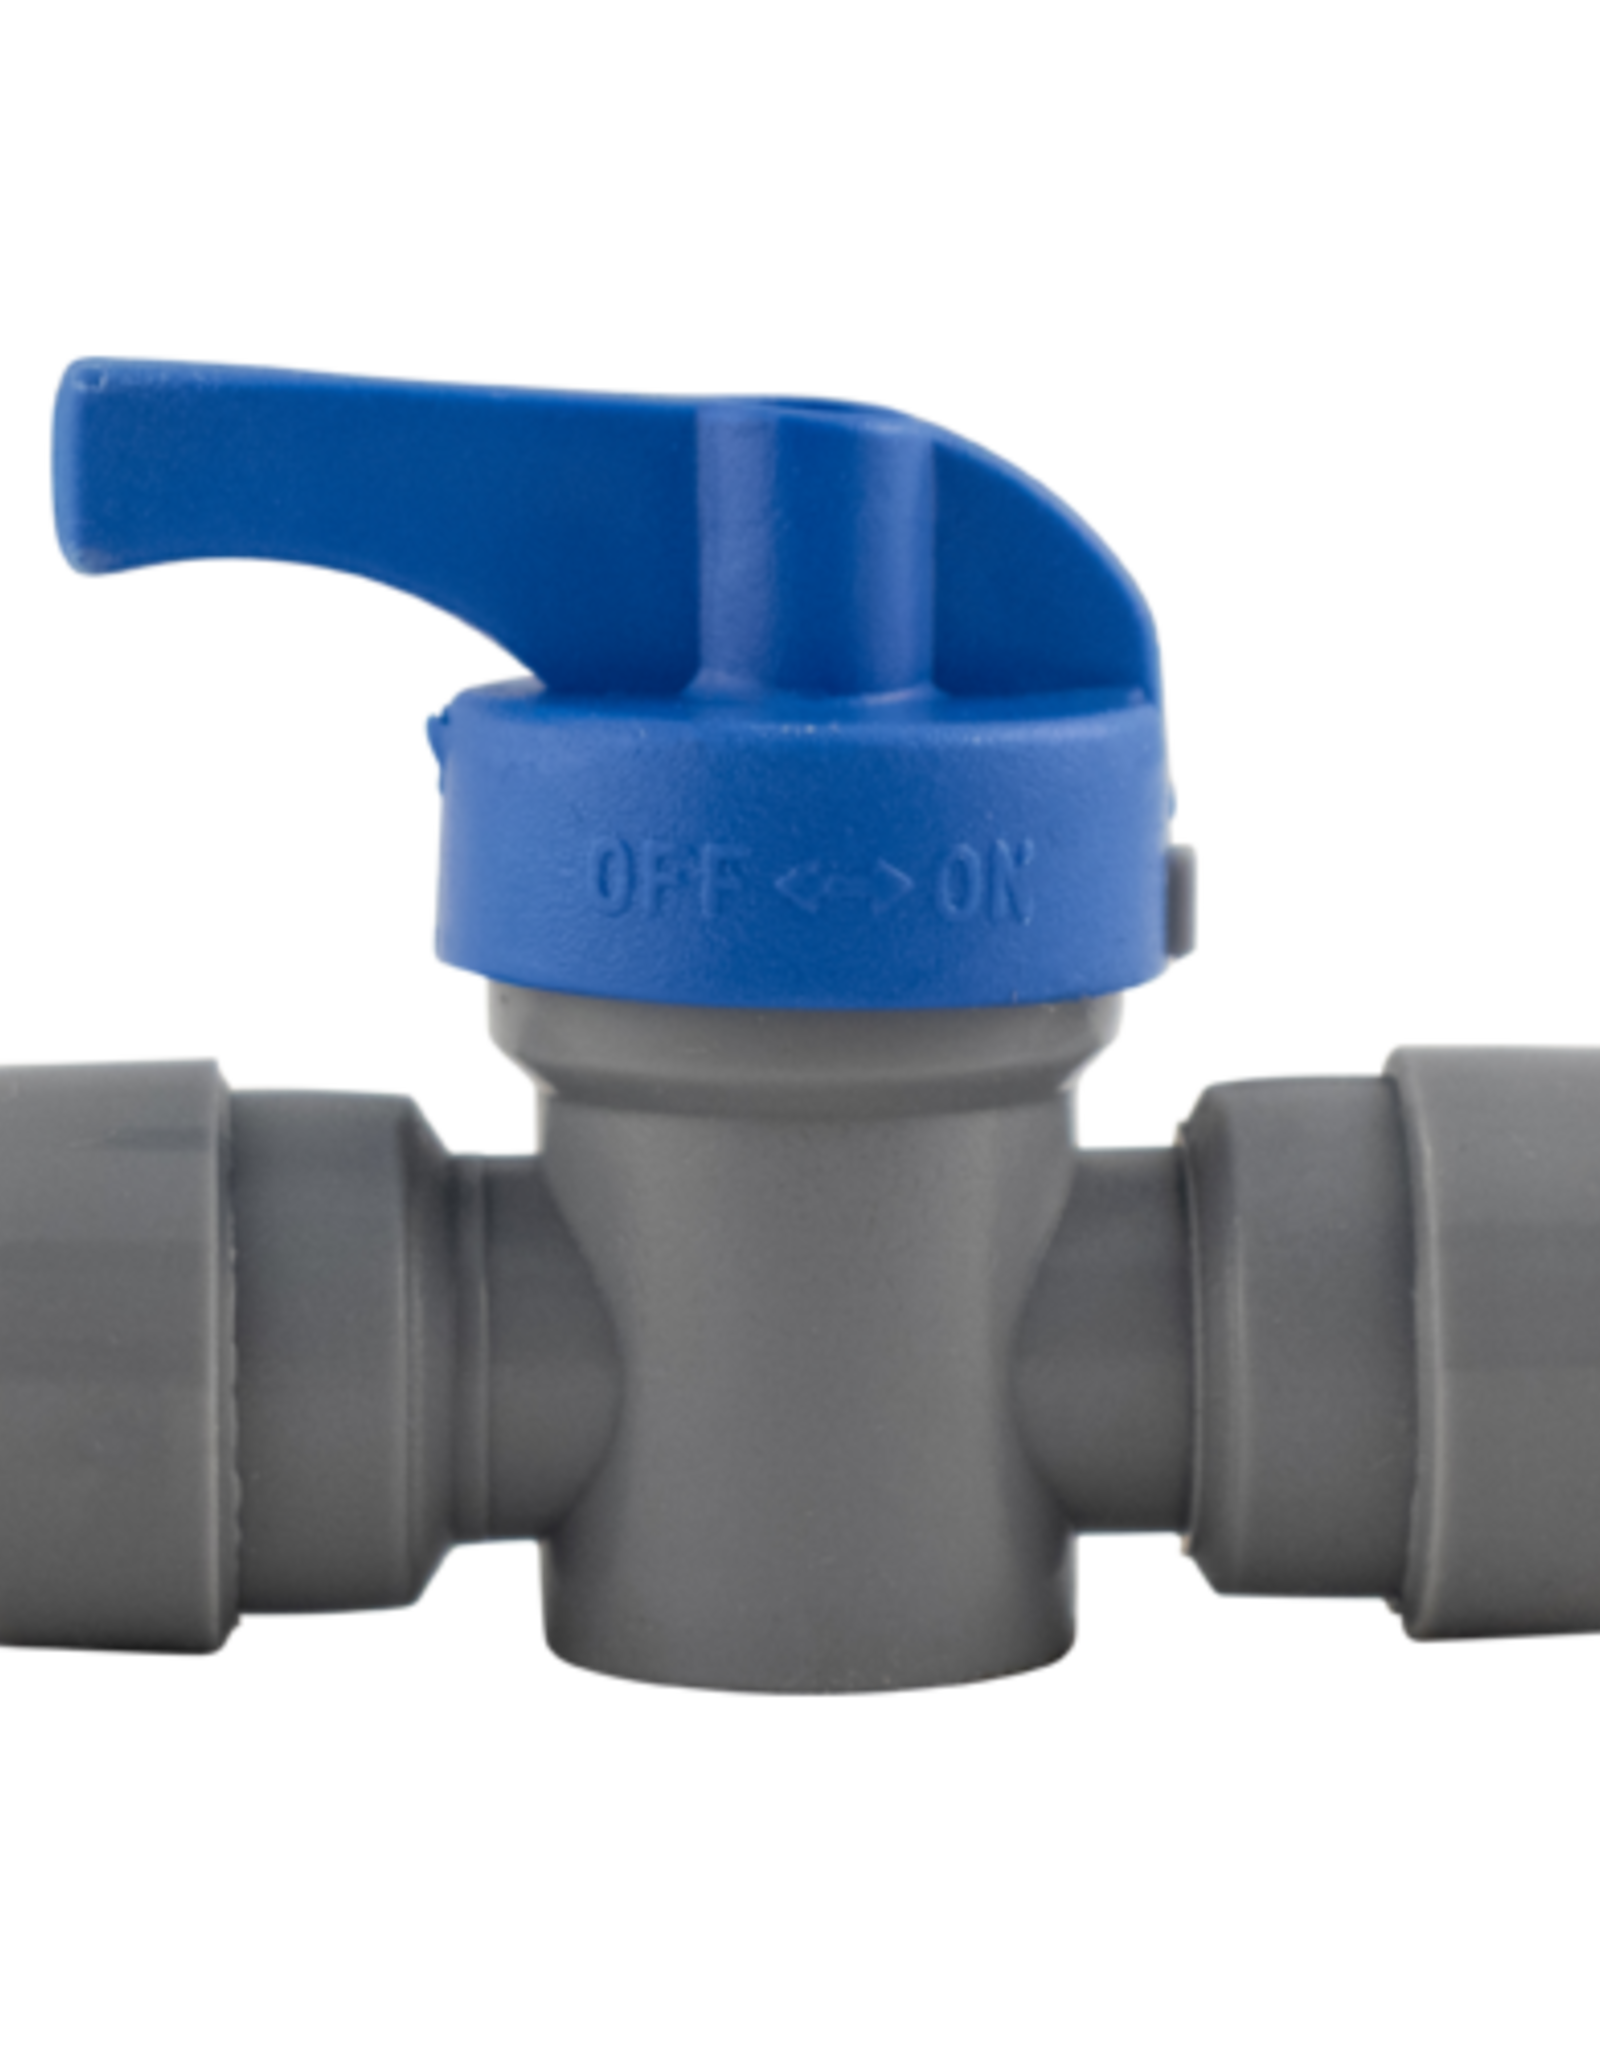 DUOTIGHT Duotight Push-In Fitting - 8 mm (5/16 in.) Ball Valve